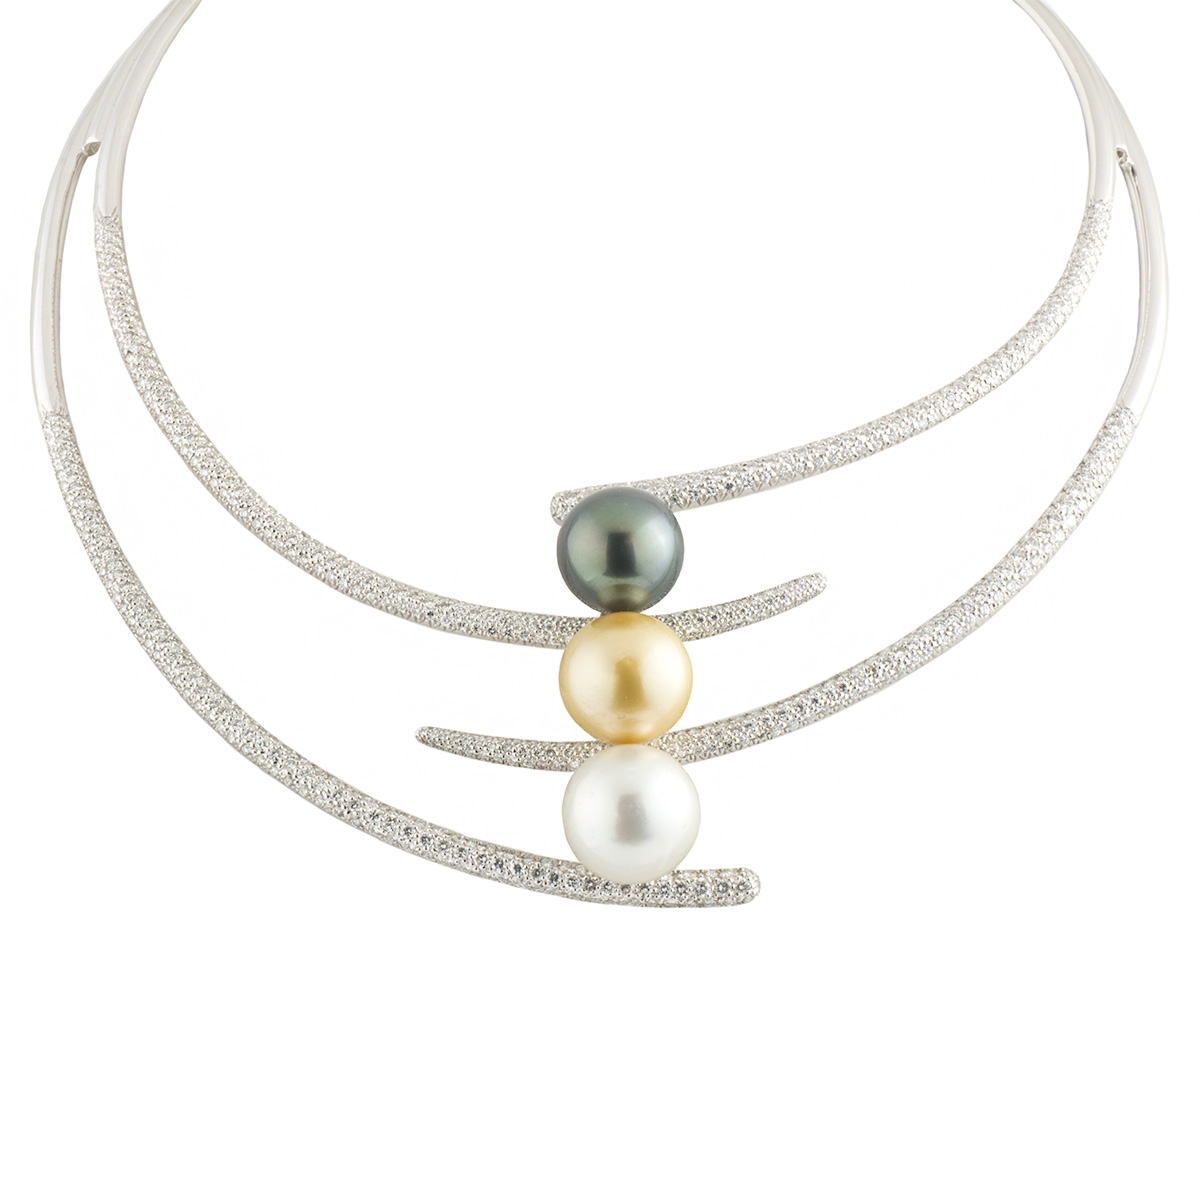 White Gold Diamond and Pearl Choker